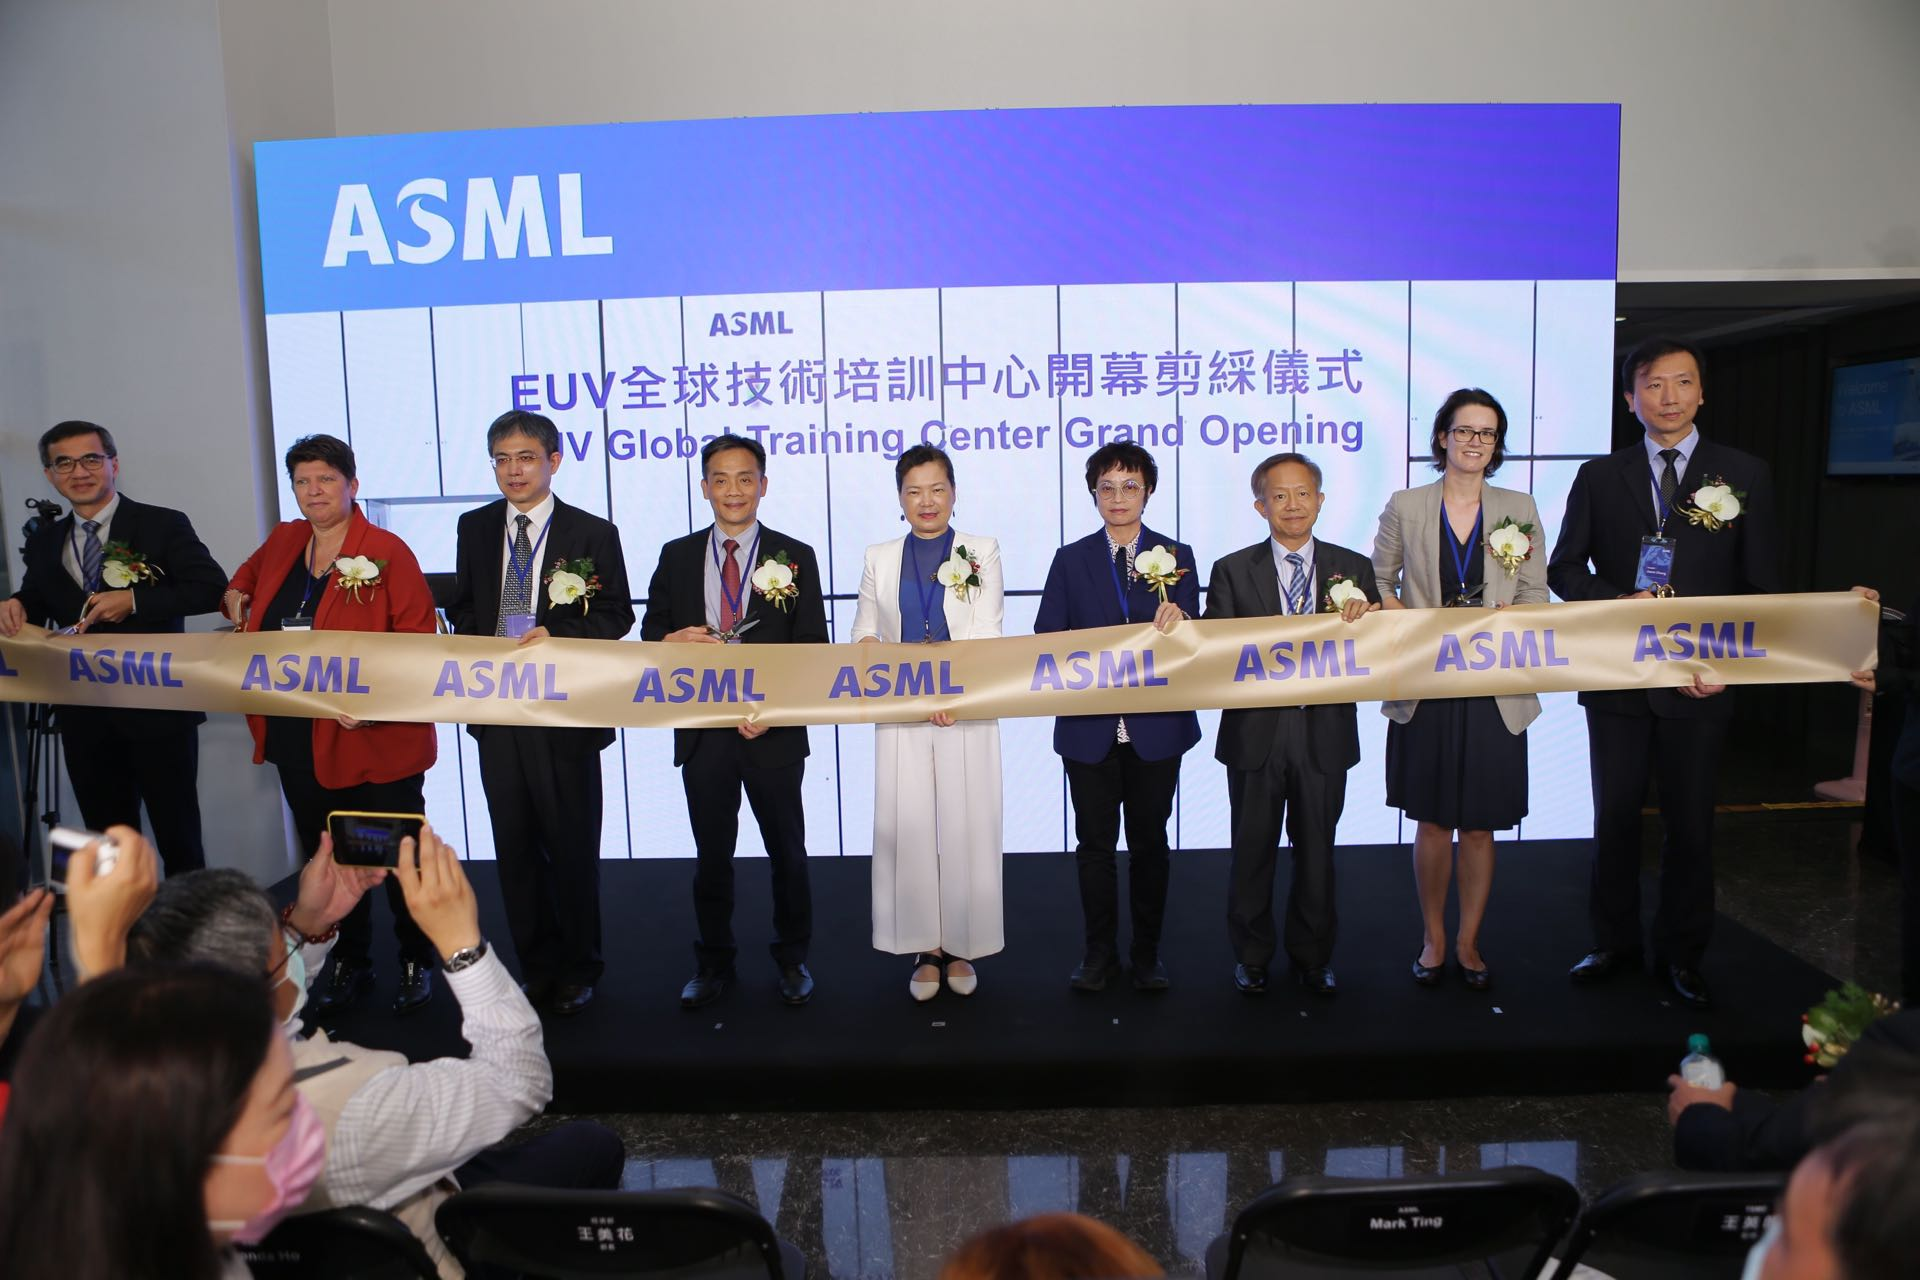 The opening ceremony of ASML EUV global technology training center Photo-2